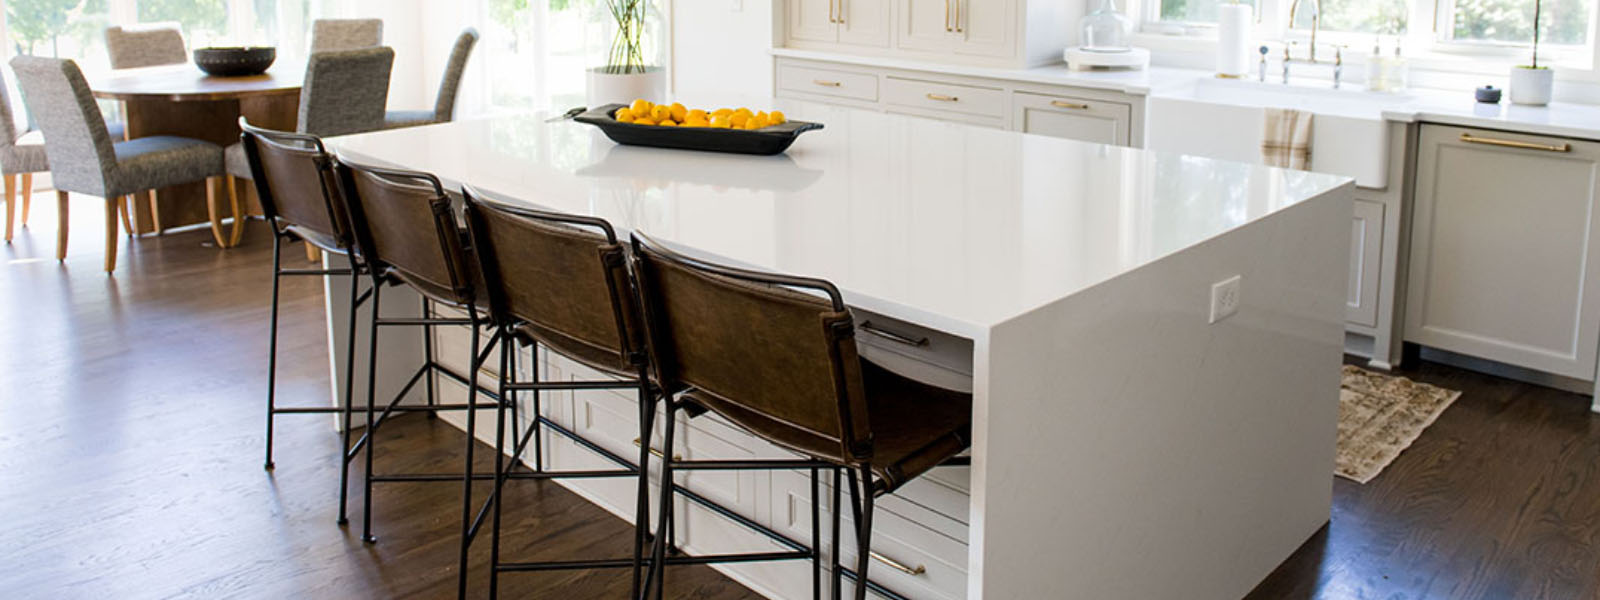 Part 1: Designing Your Kitchen Island